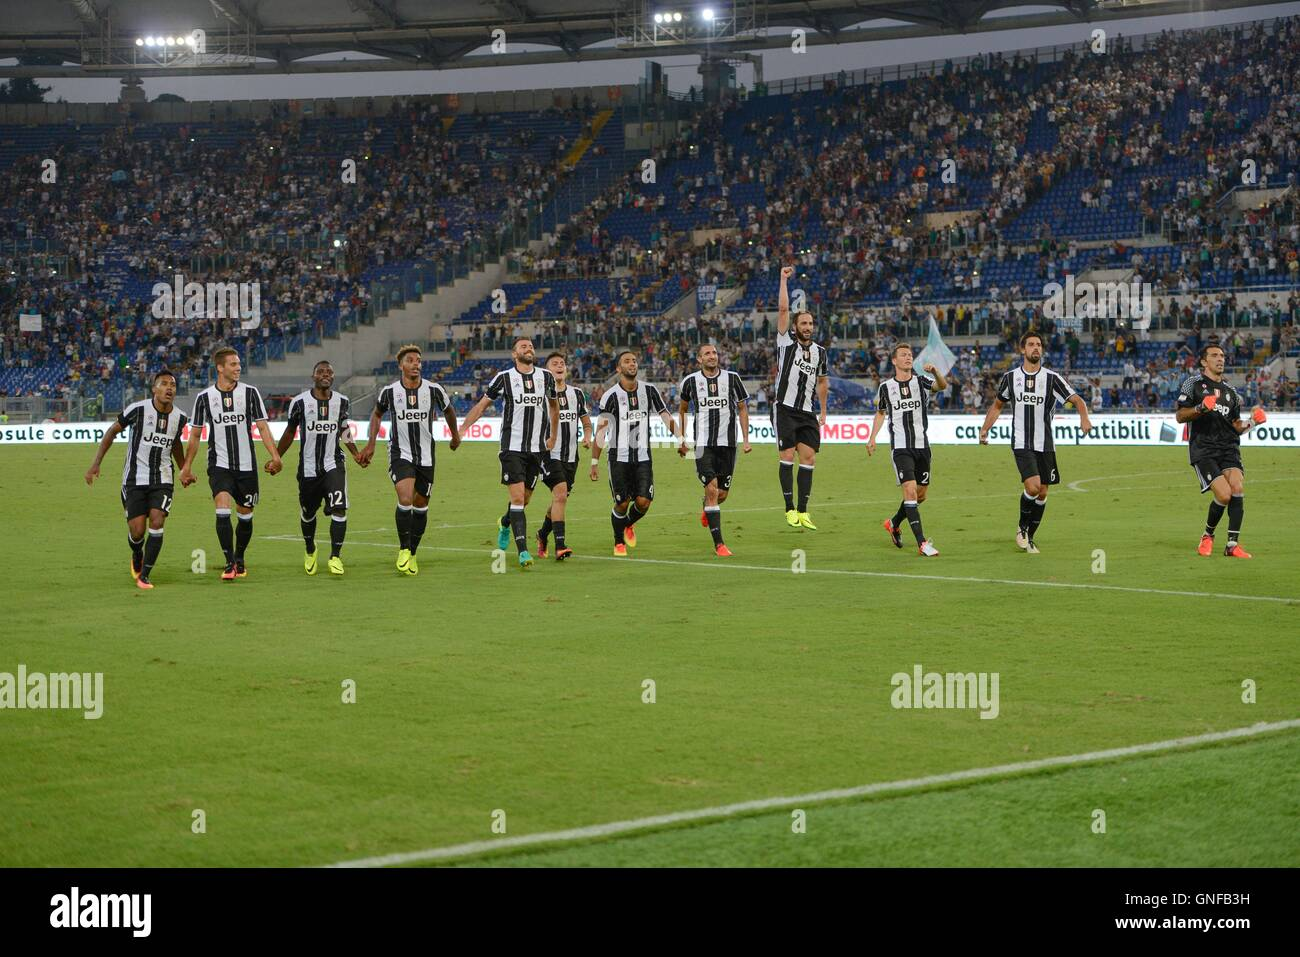 F.C. Juventus players celebrates during the Italian Serie A football match between S.S. Lazio and F.C. Juventus - Stock Image